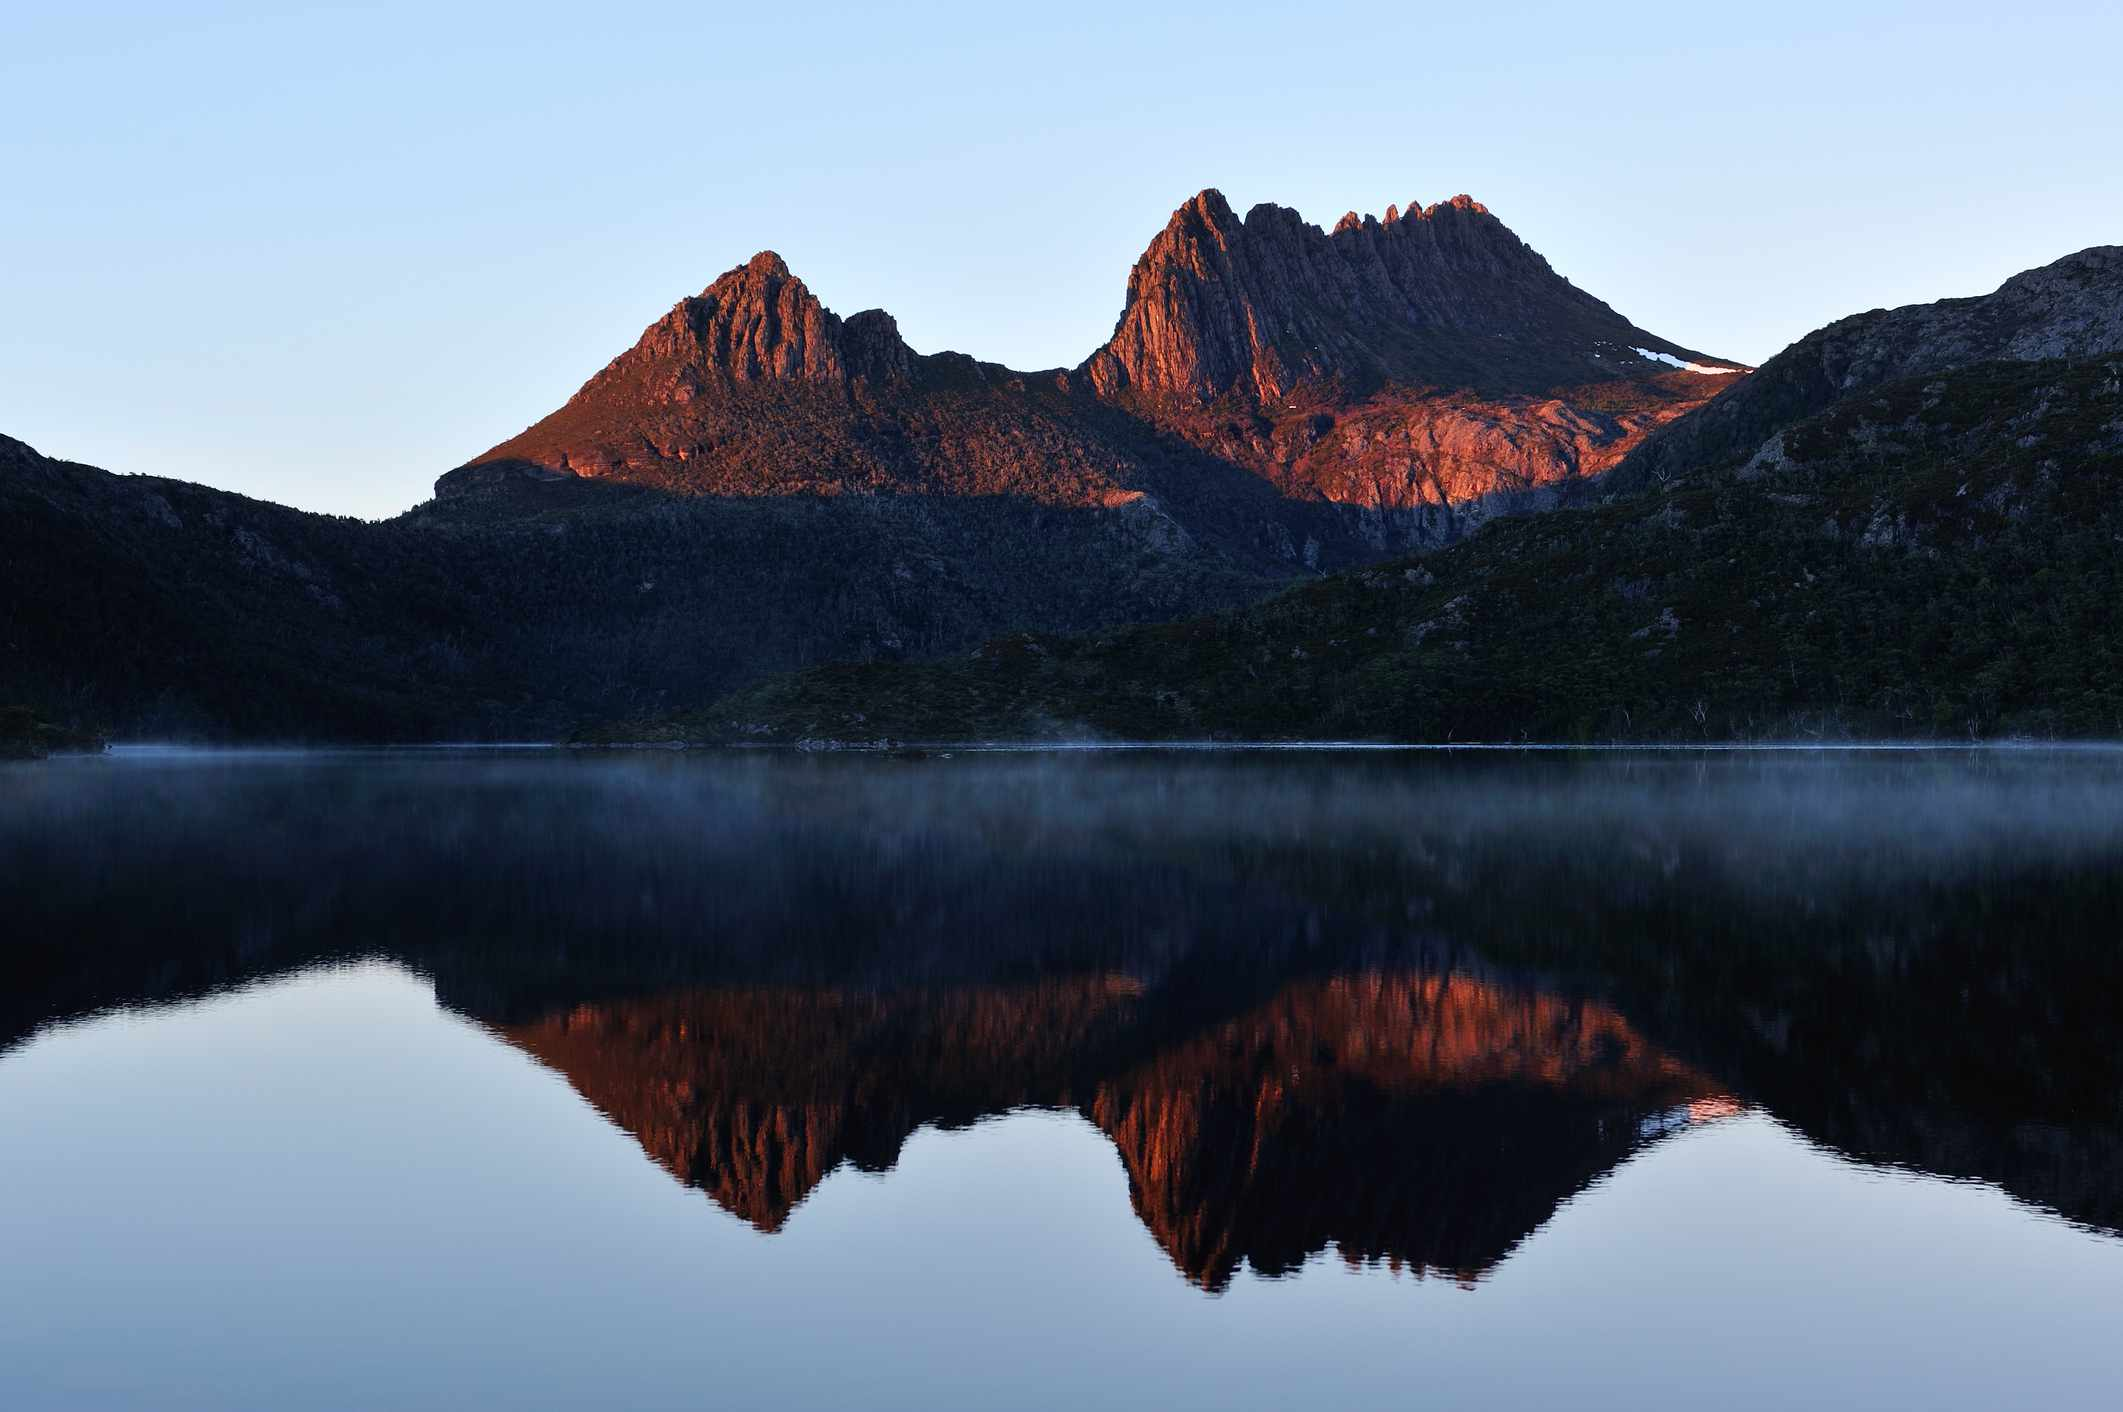 Reflection of Cradle Mountain in a misty lake